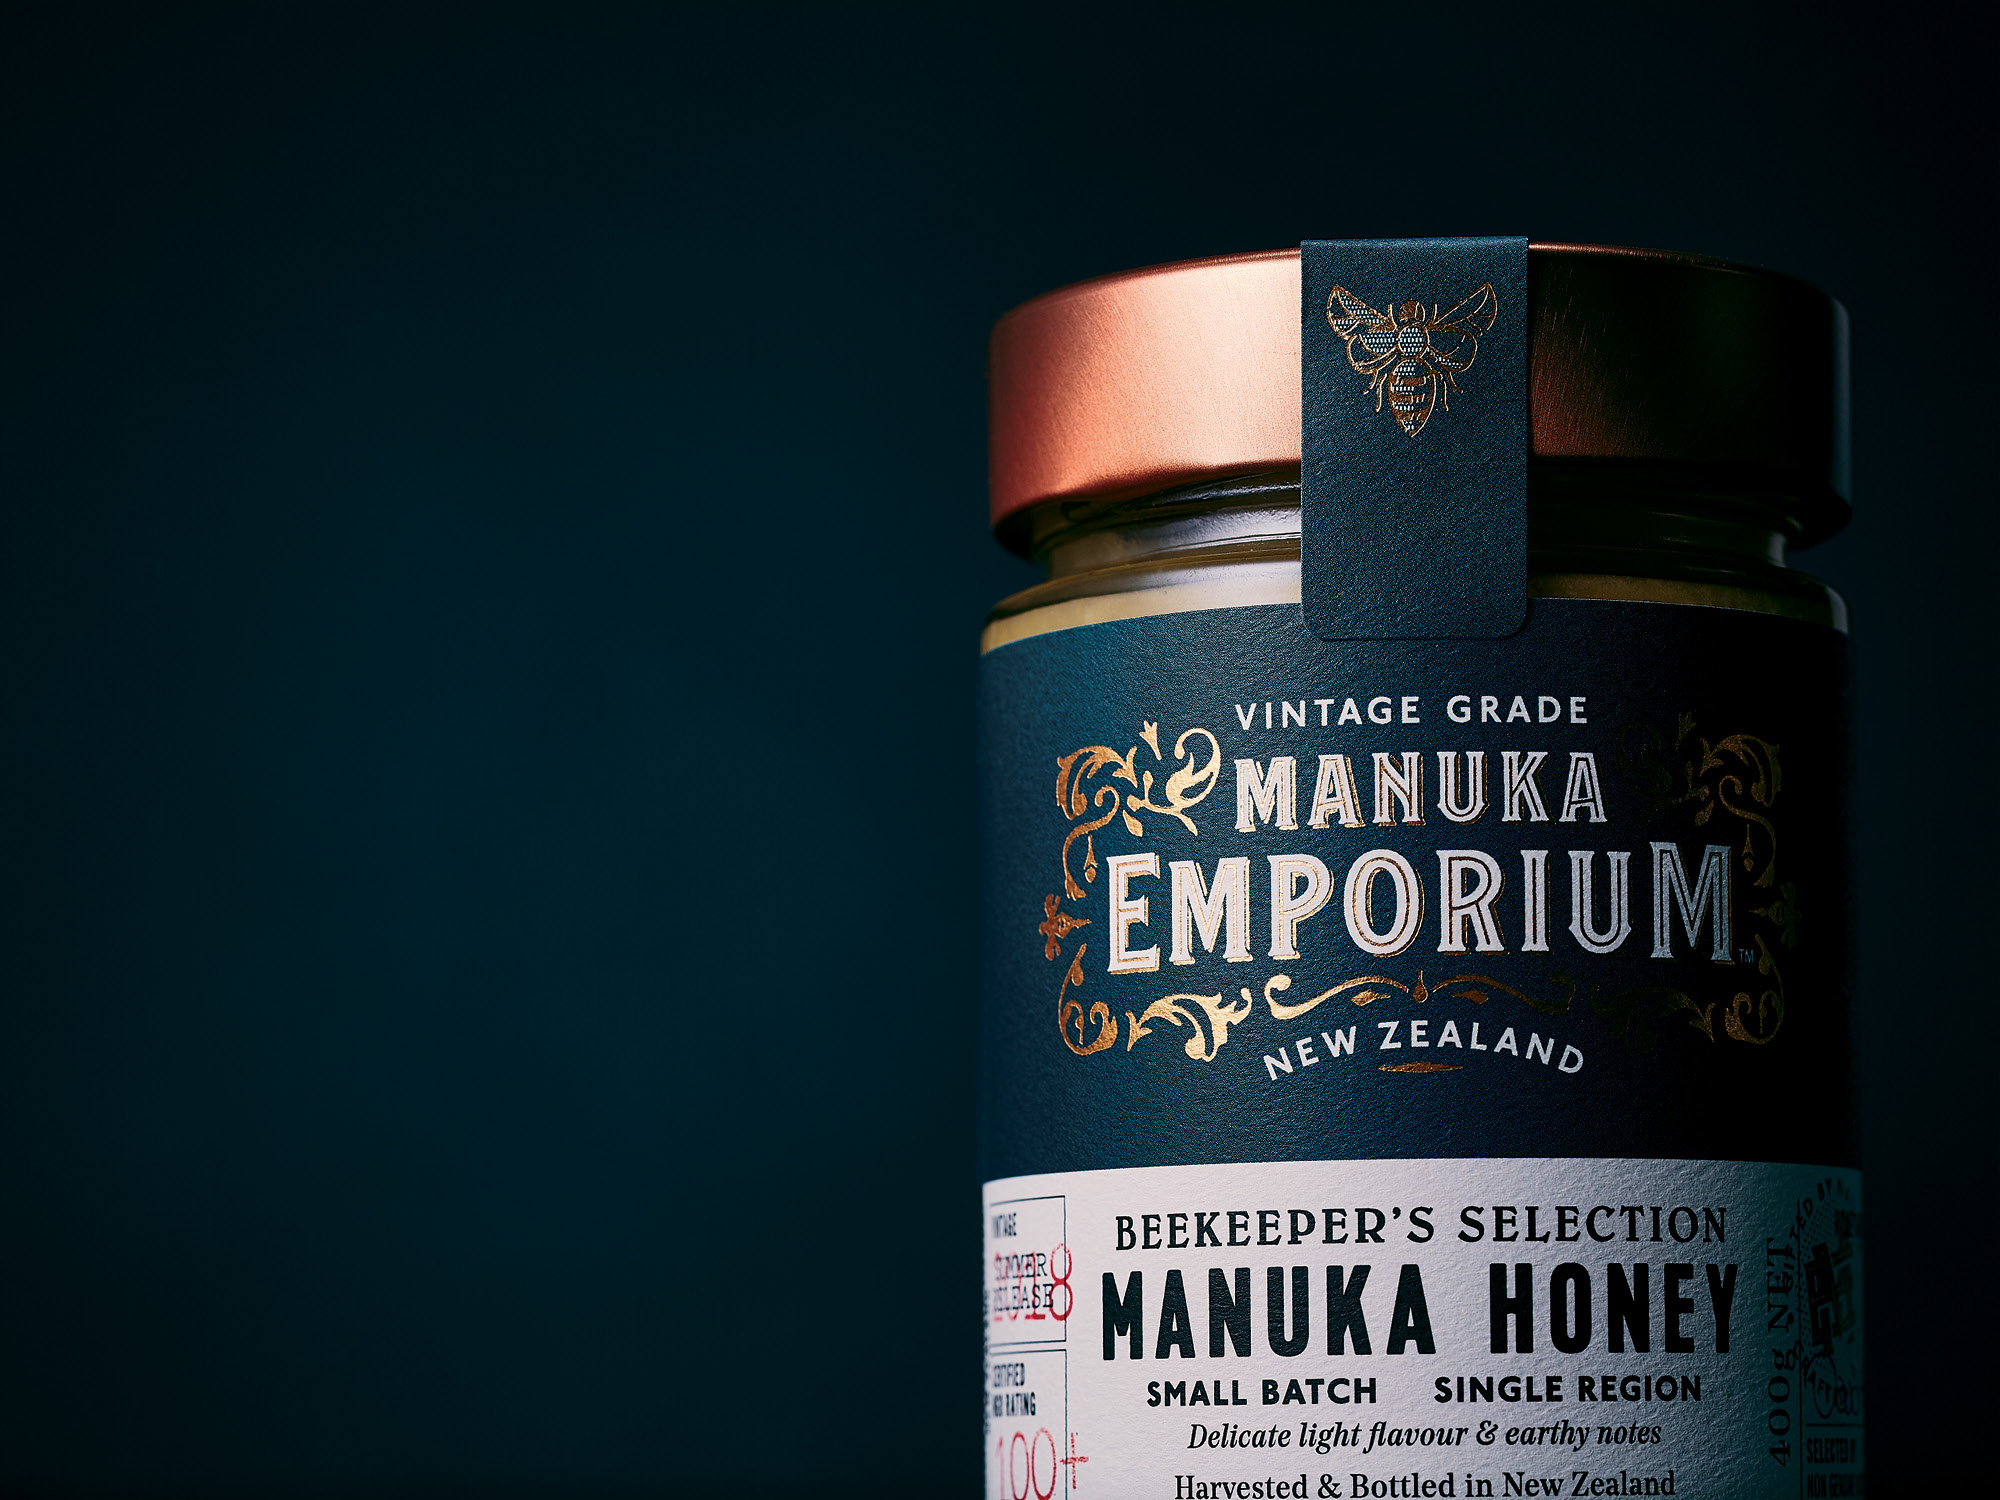 Onfire Design Manuka Emporium Honey Packaging Branding Design 3